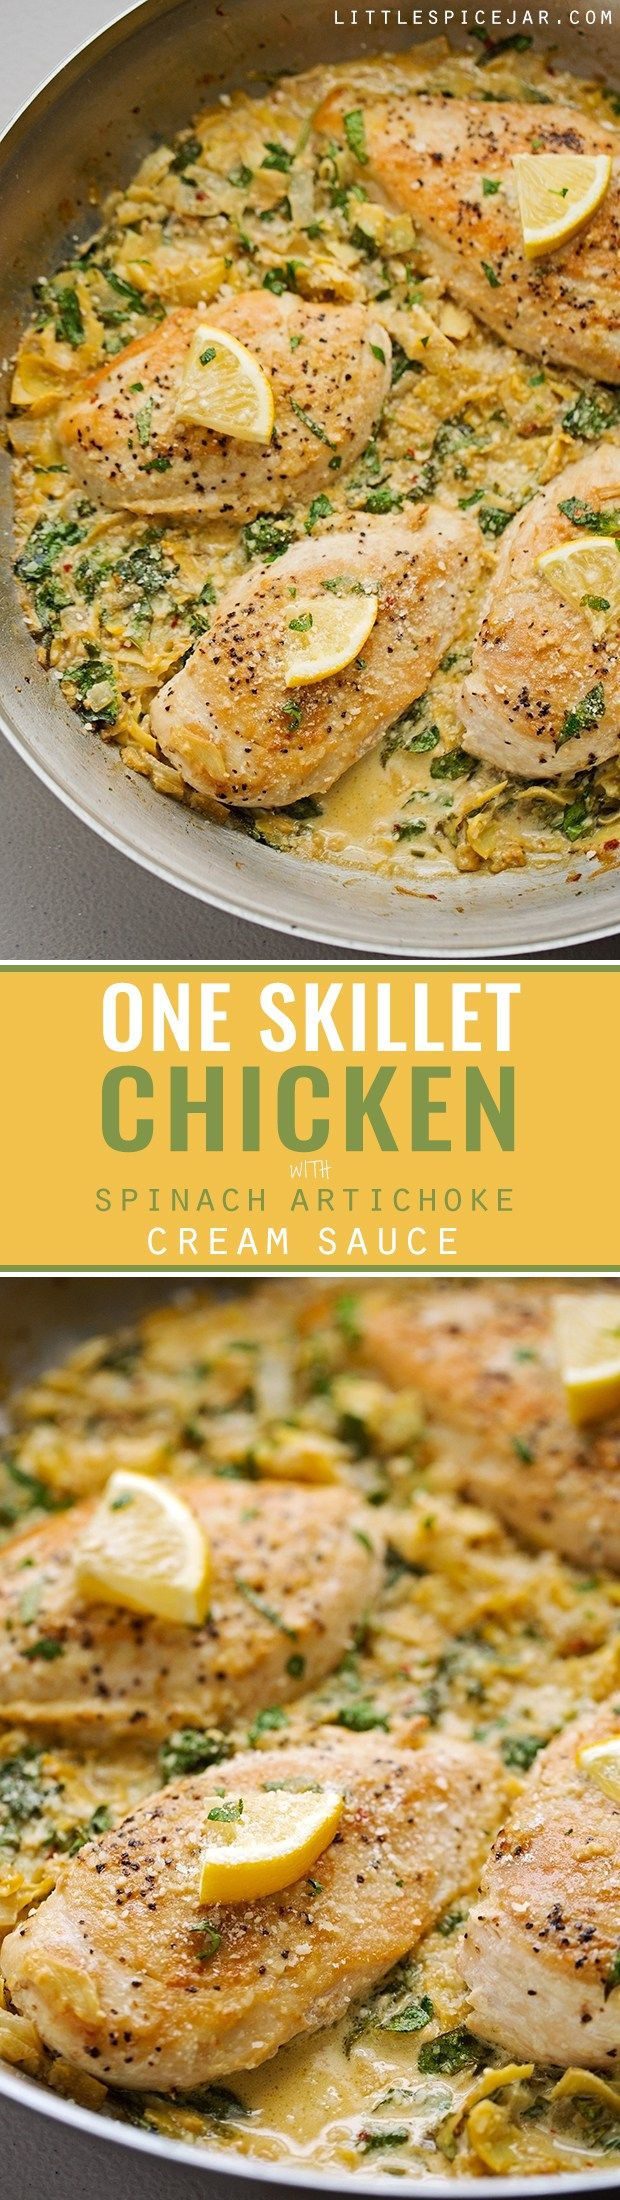 One Skillet Chicken topped with a Spinach Artichoke Cream Sauce - Ready in 30 minutes and perfect over a bed of angel hair pasta! #spinachchicken #skilletchicken #oneskilletchicken | Littlespicejar.com @littlespicejar